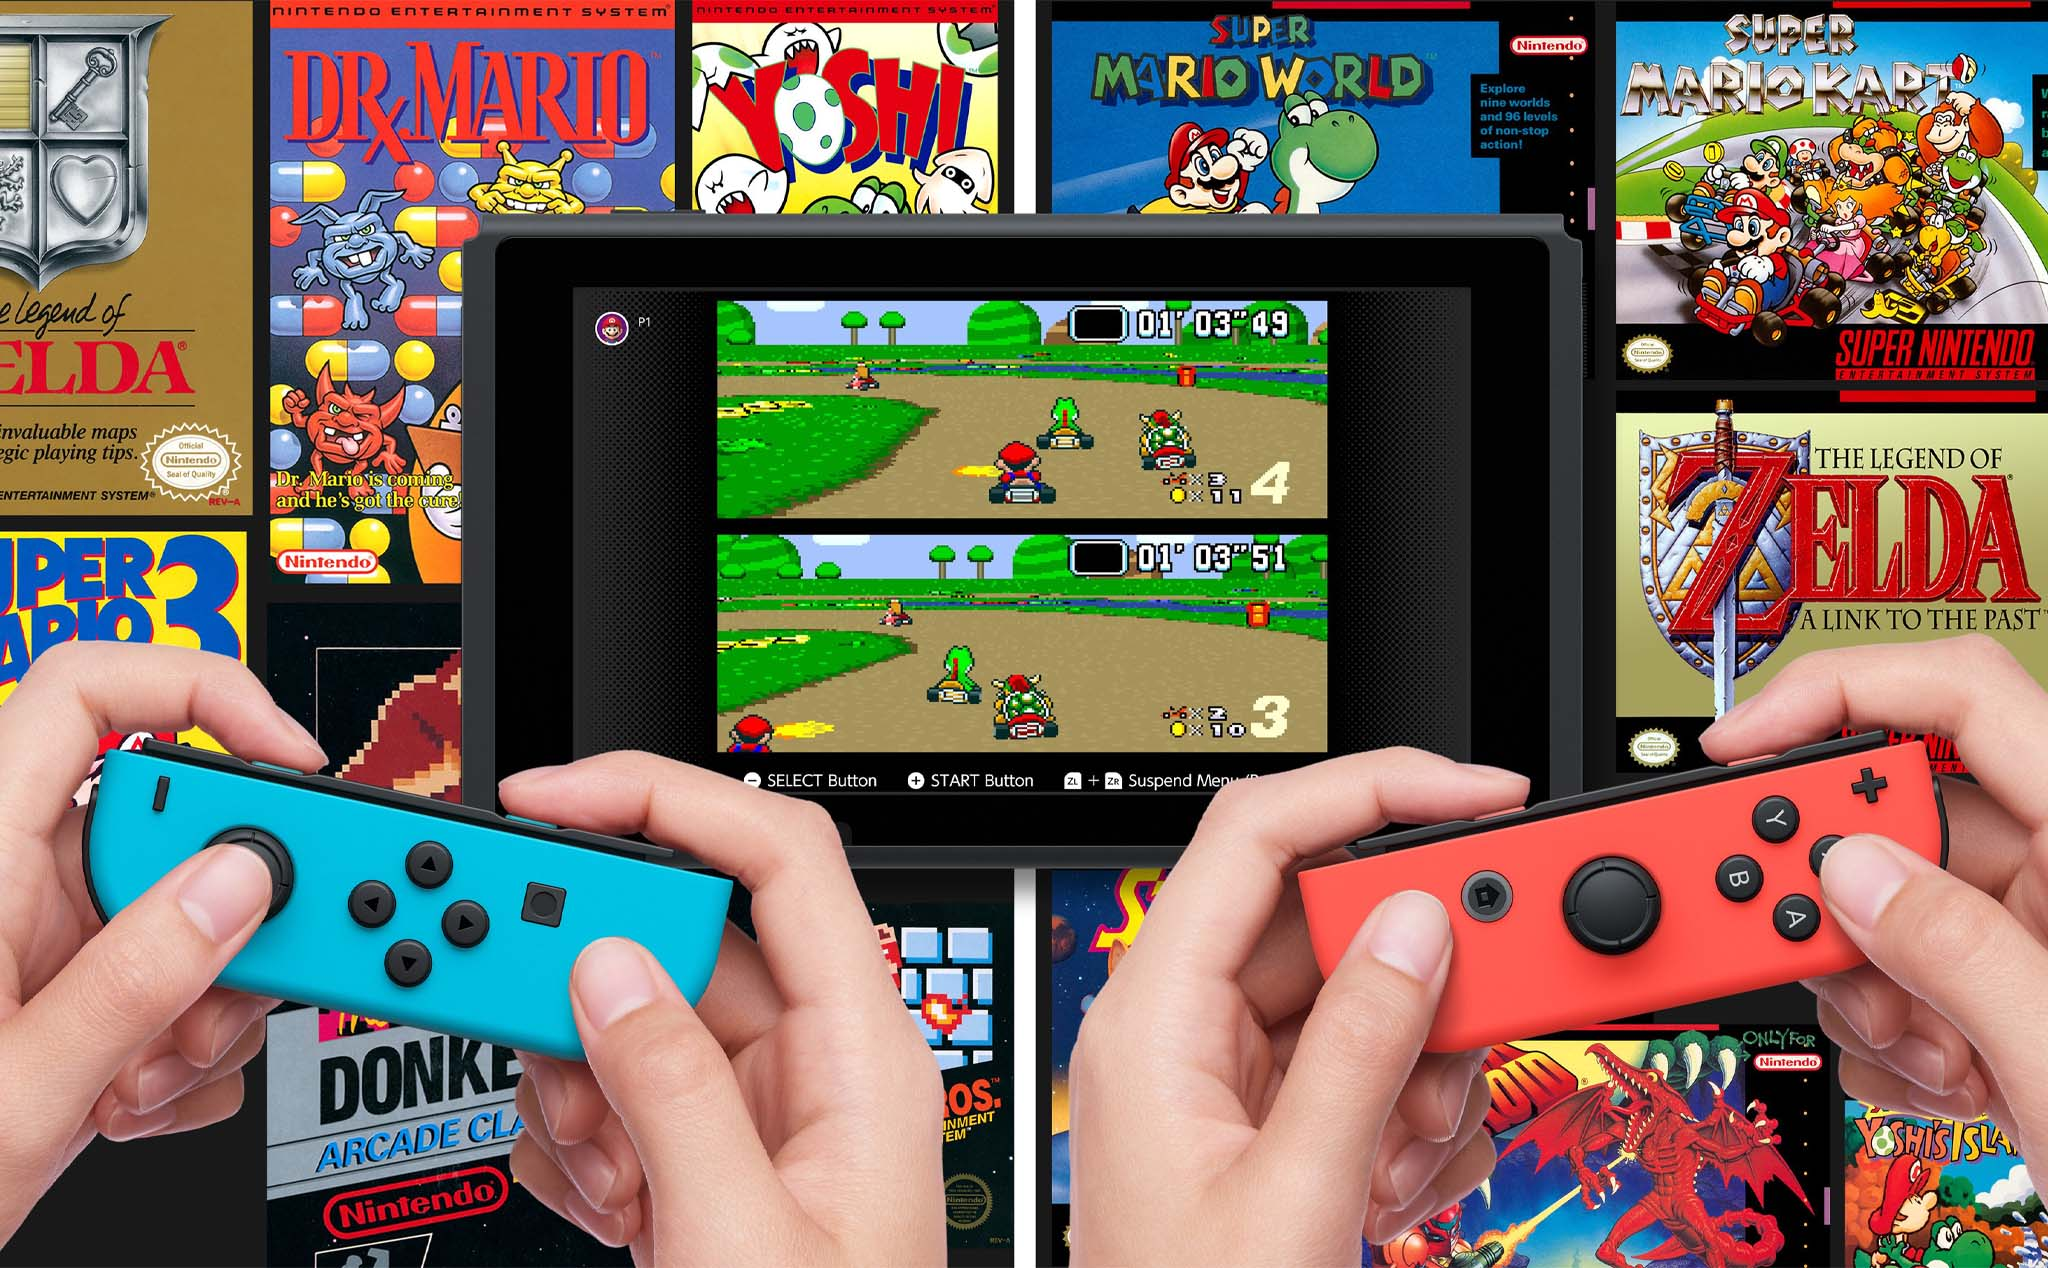 20 SNES games have been posted on Switch: Super Mario World, Super Metroid, Super Mario Kart